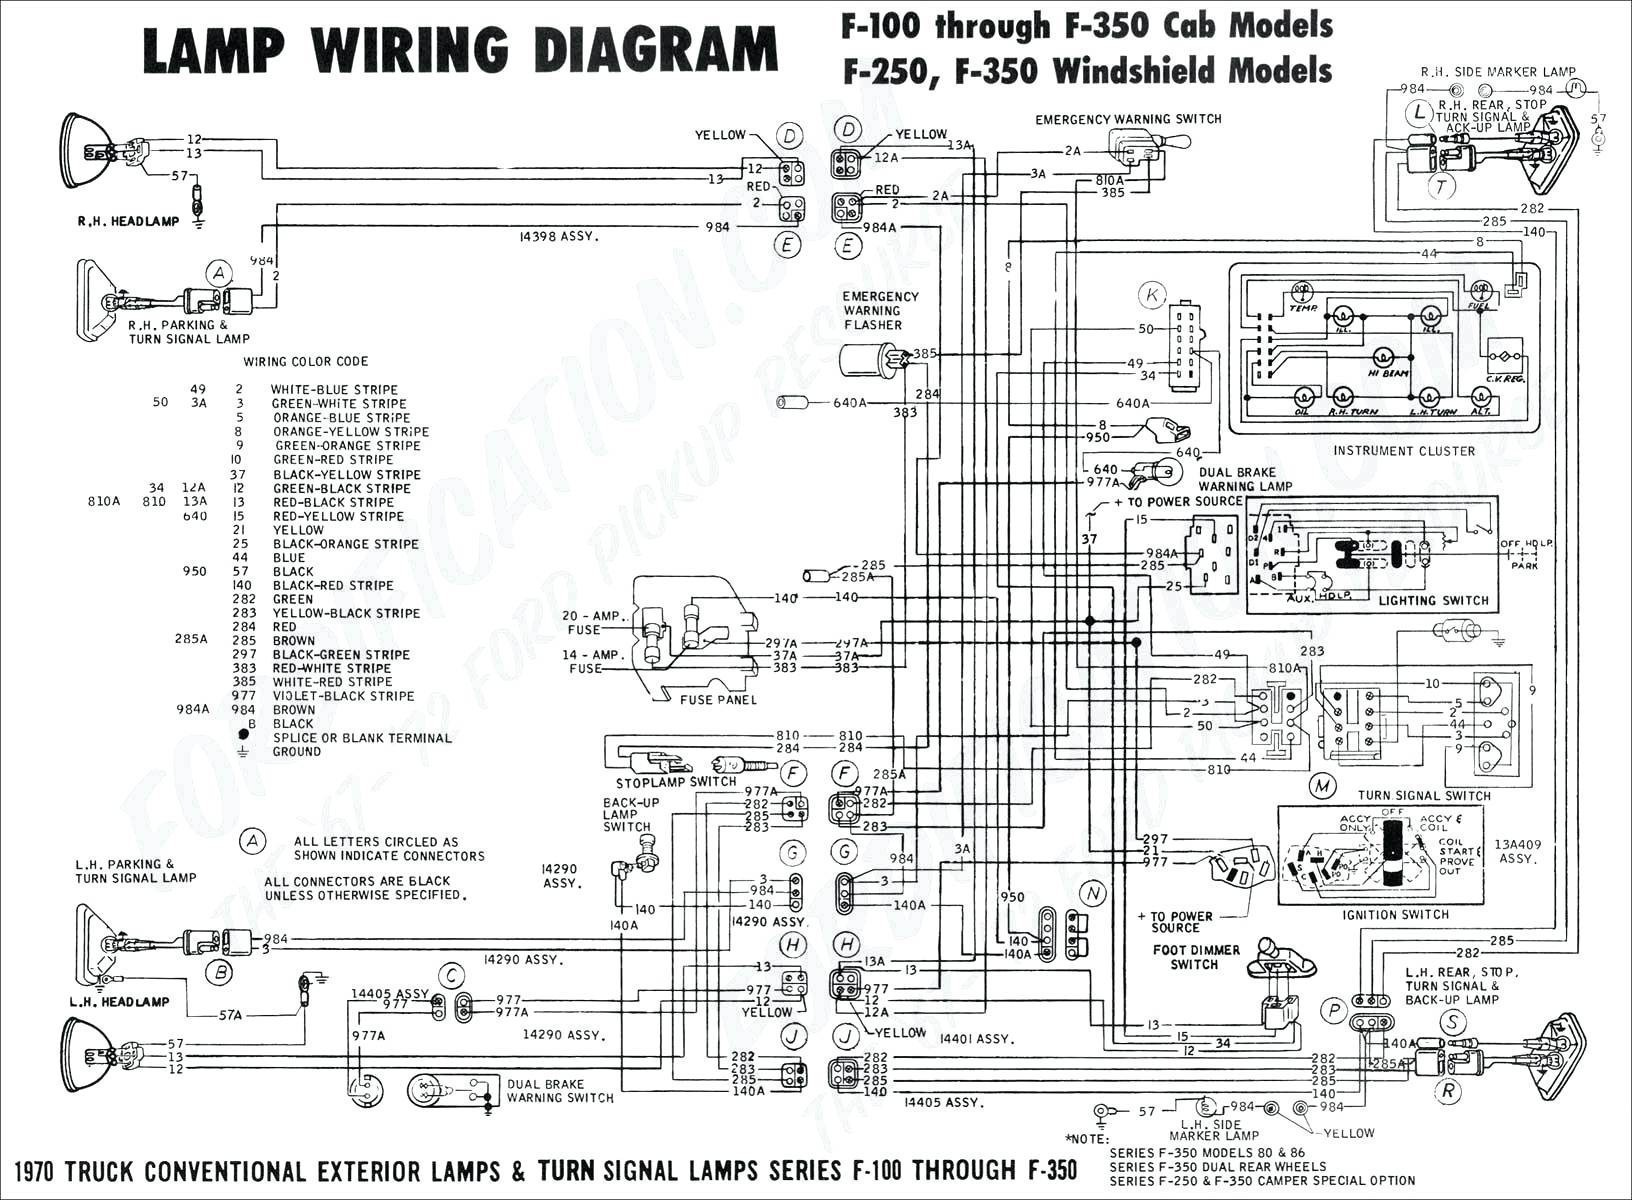 Mitsubishi Mini Truck Wiring Diagram Experts Of Wiring Diagram \u2022 1989  Chevrolet Truck Wiring Diagram Mini Truck Wiring Diagram